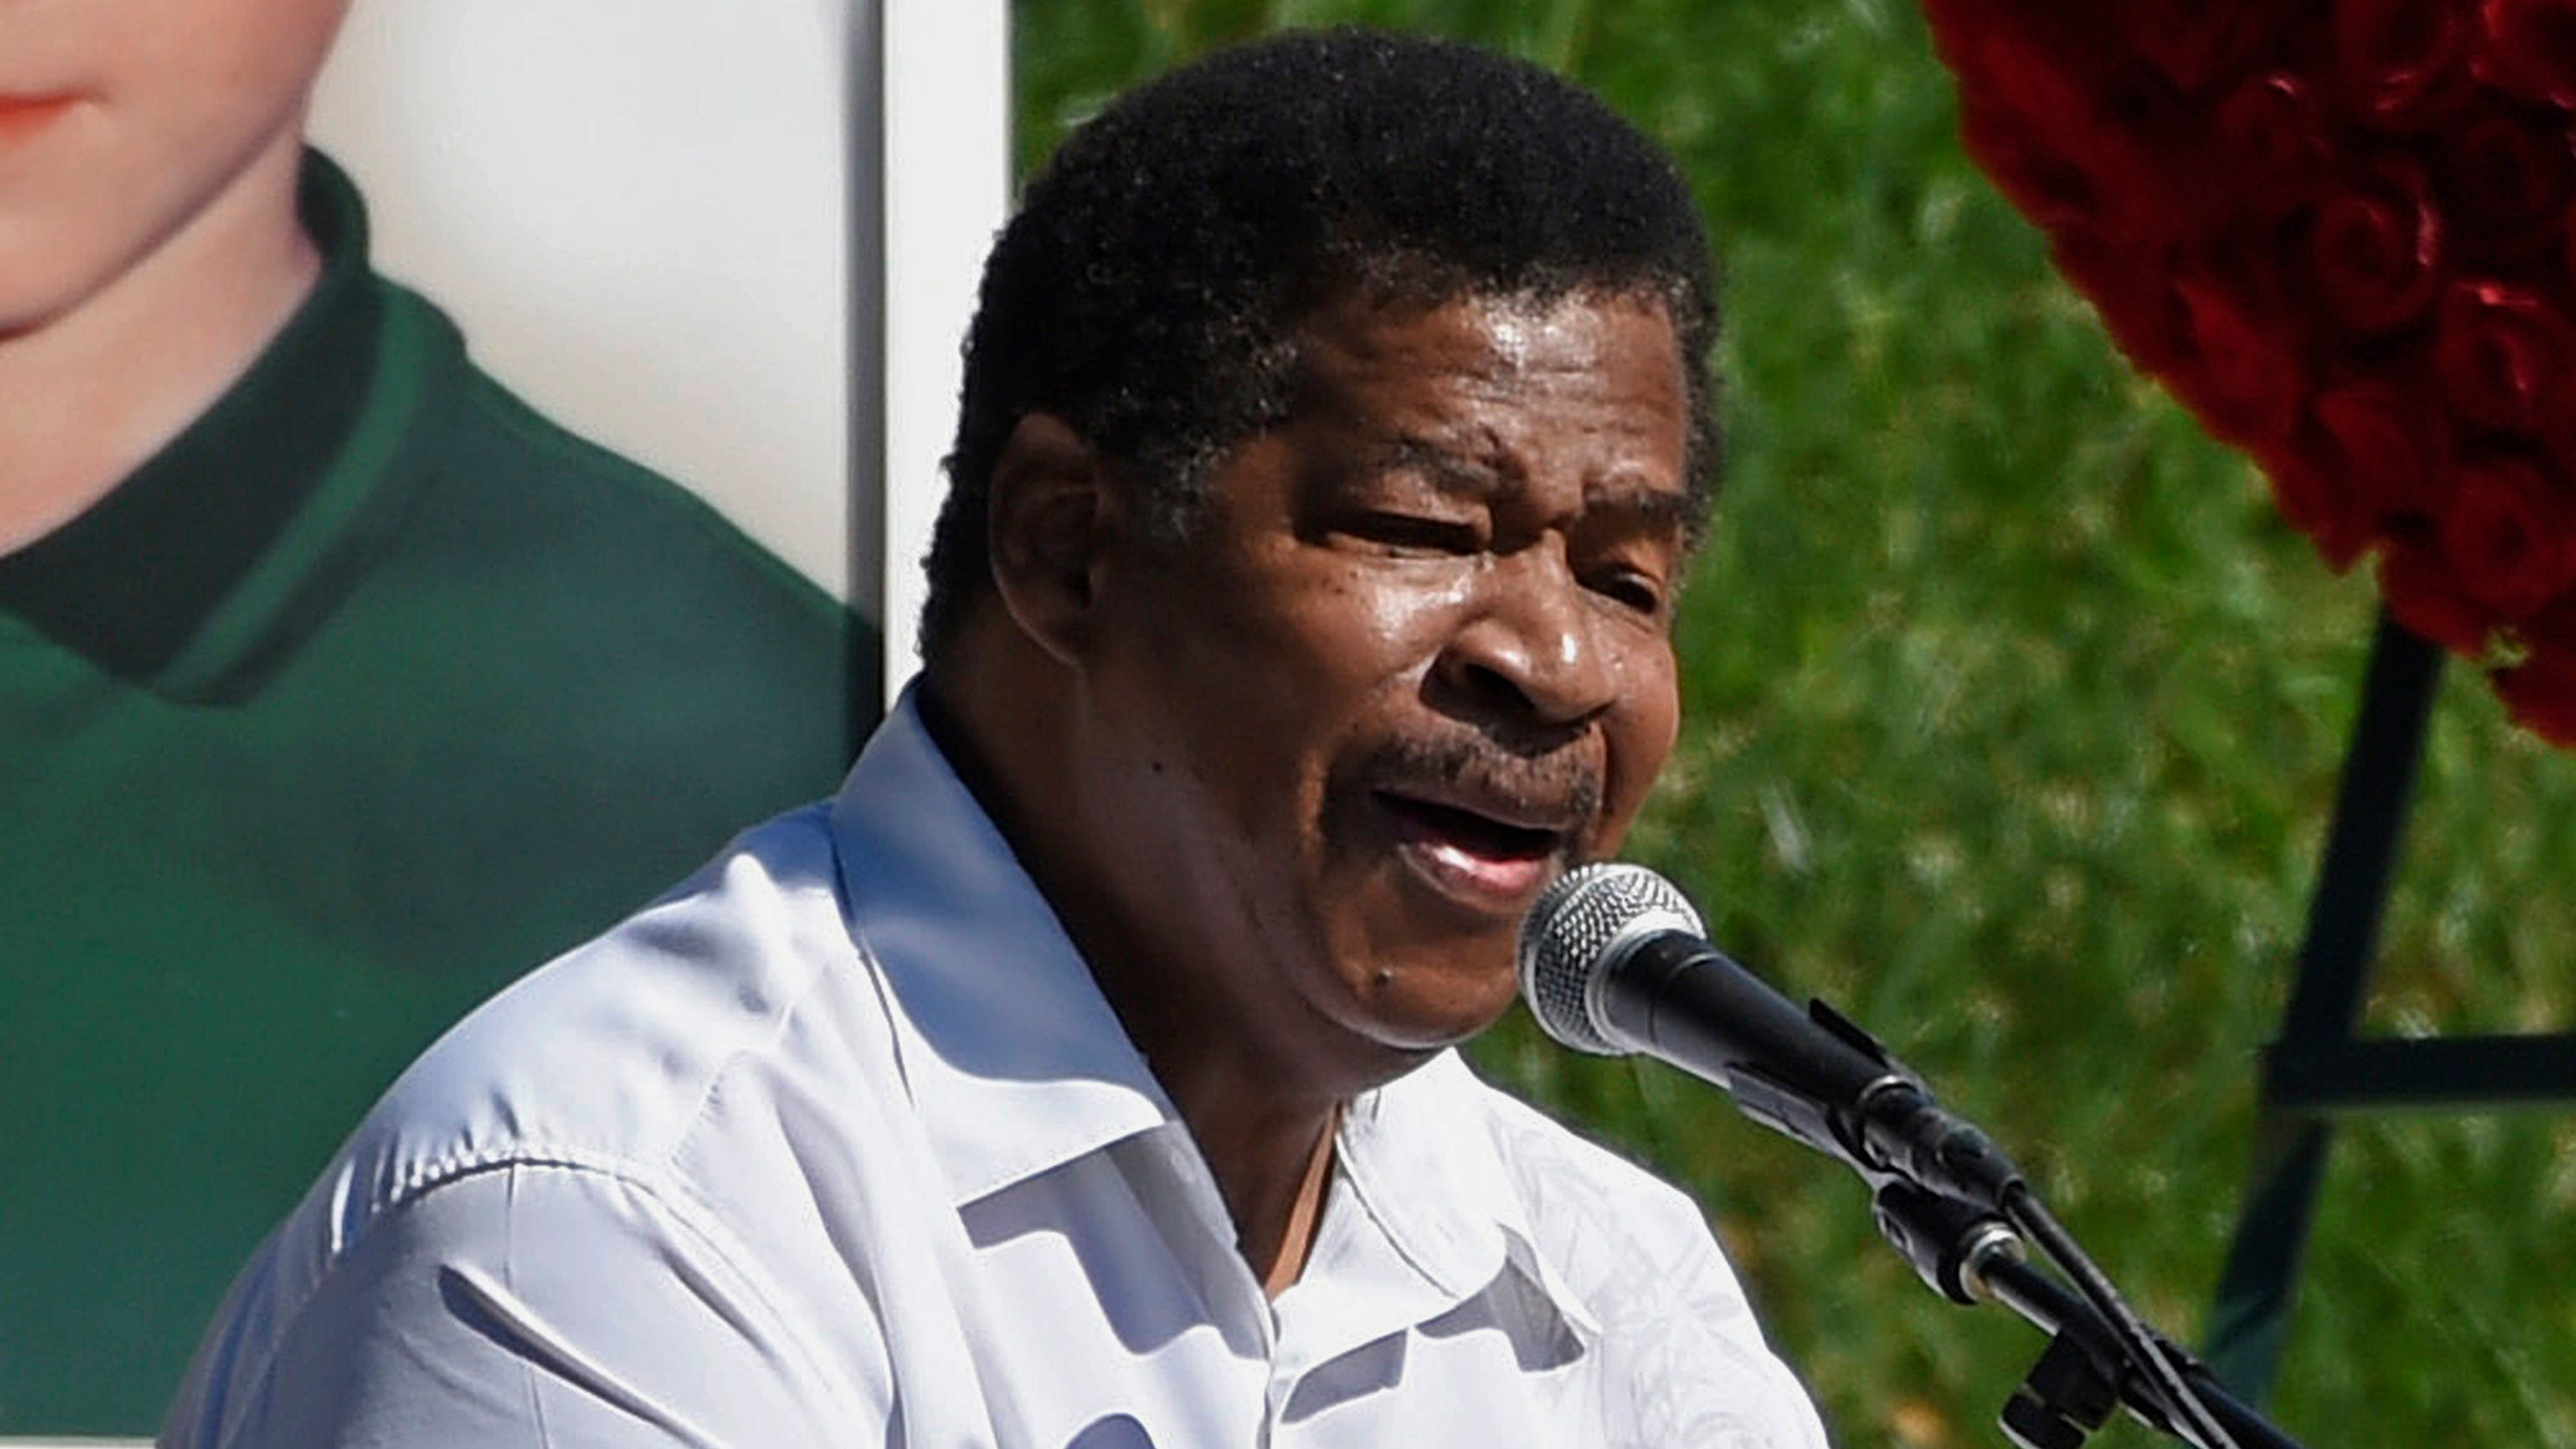 Jerry Lawson, of a cappella Persuasions, dies at 75 at Phoenix hospice